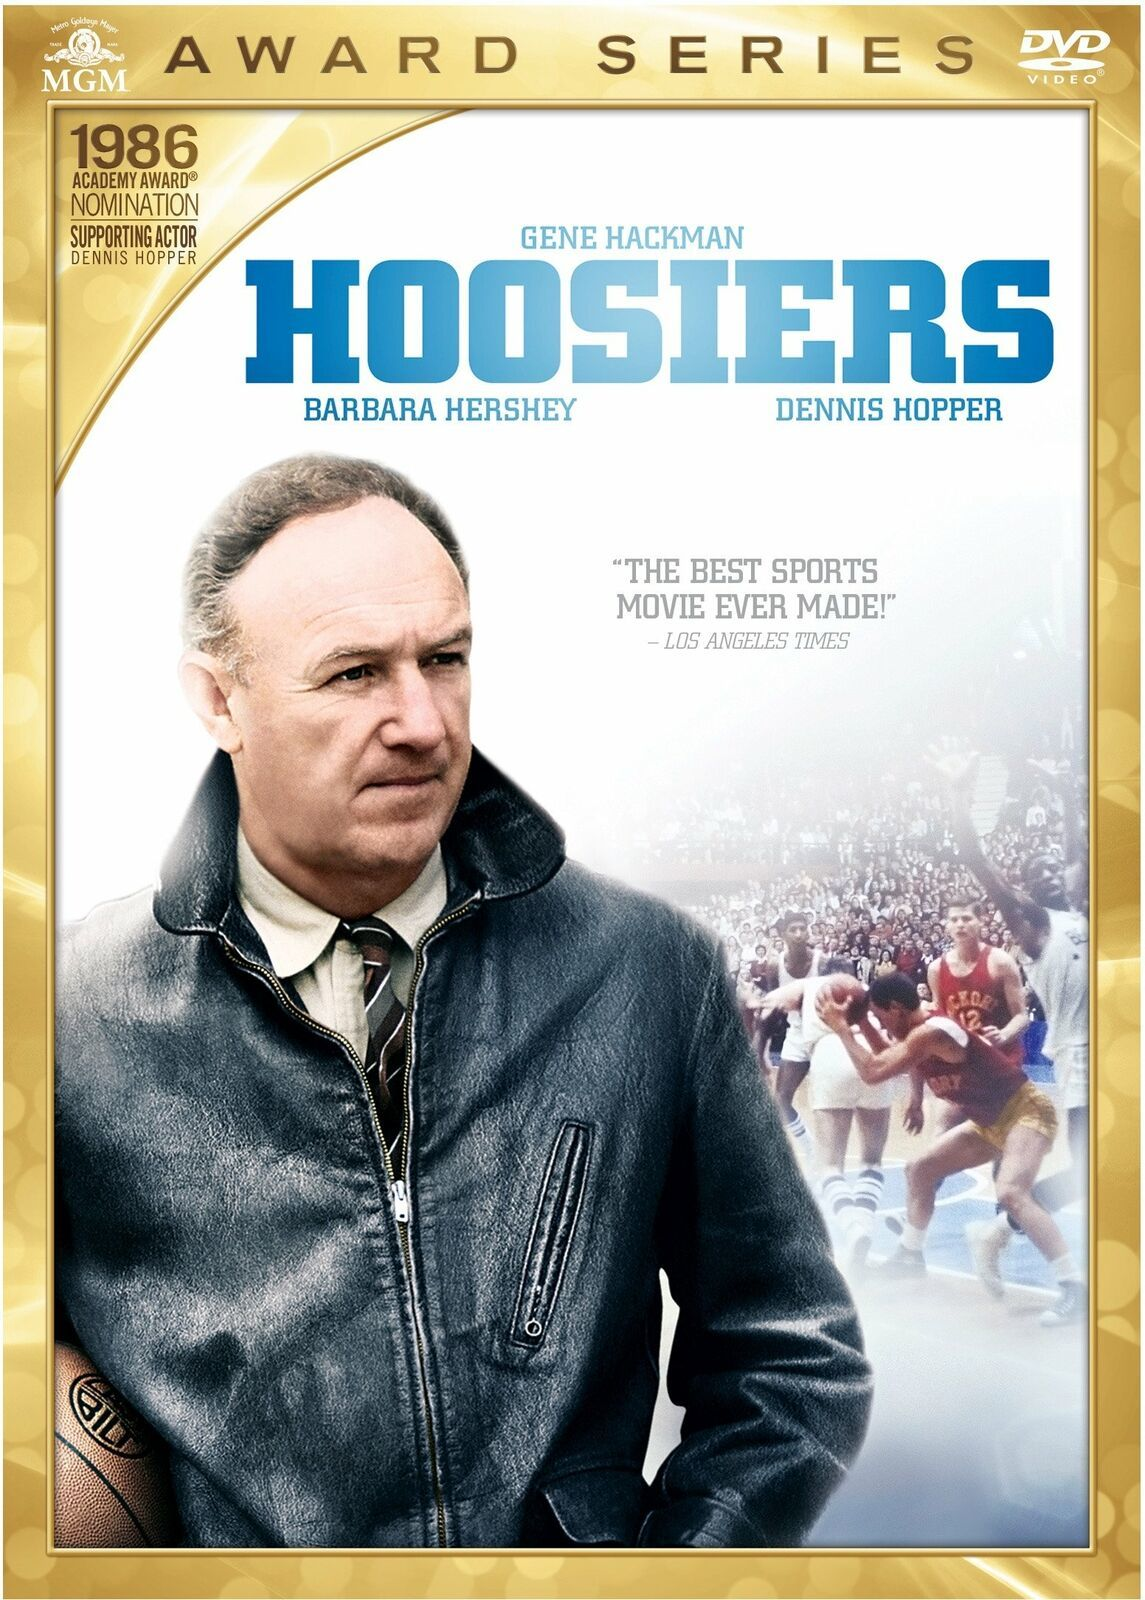 Primary image for Hossiers [DVD]